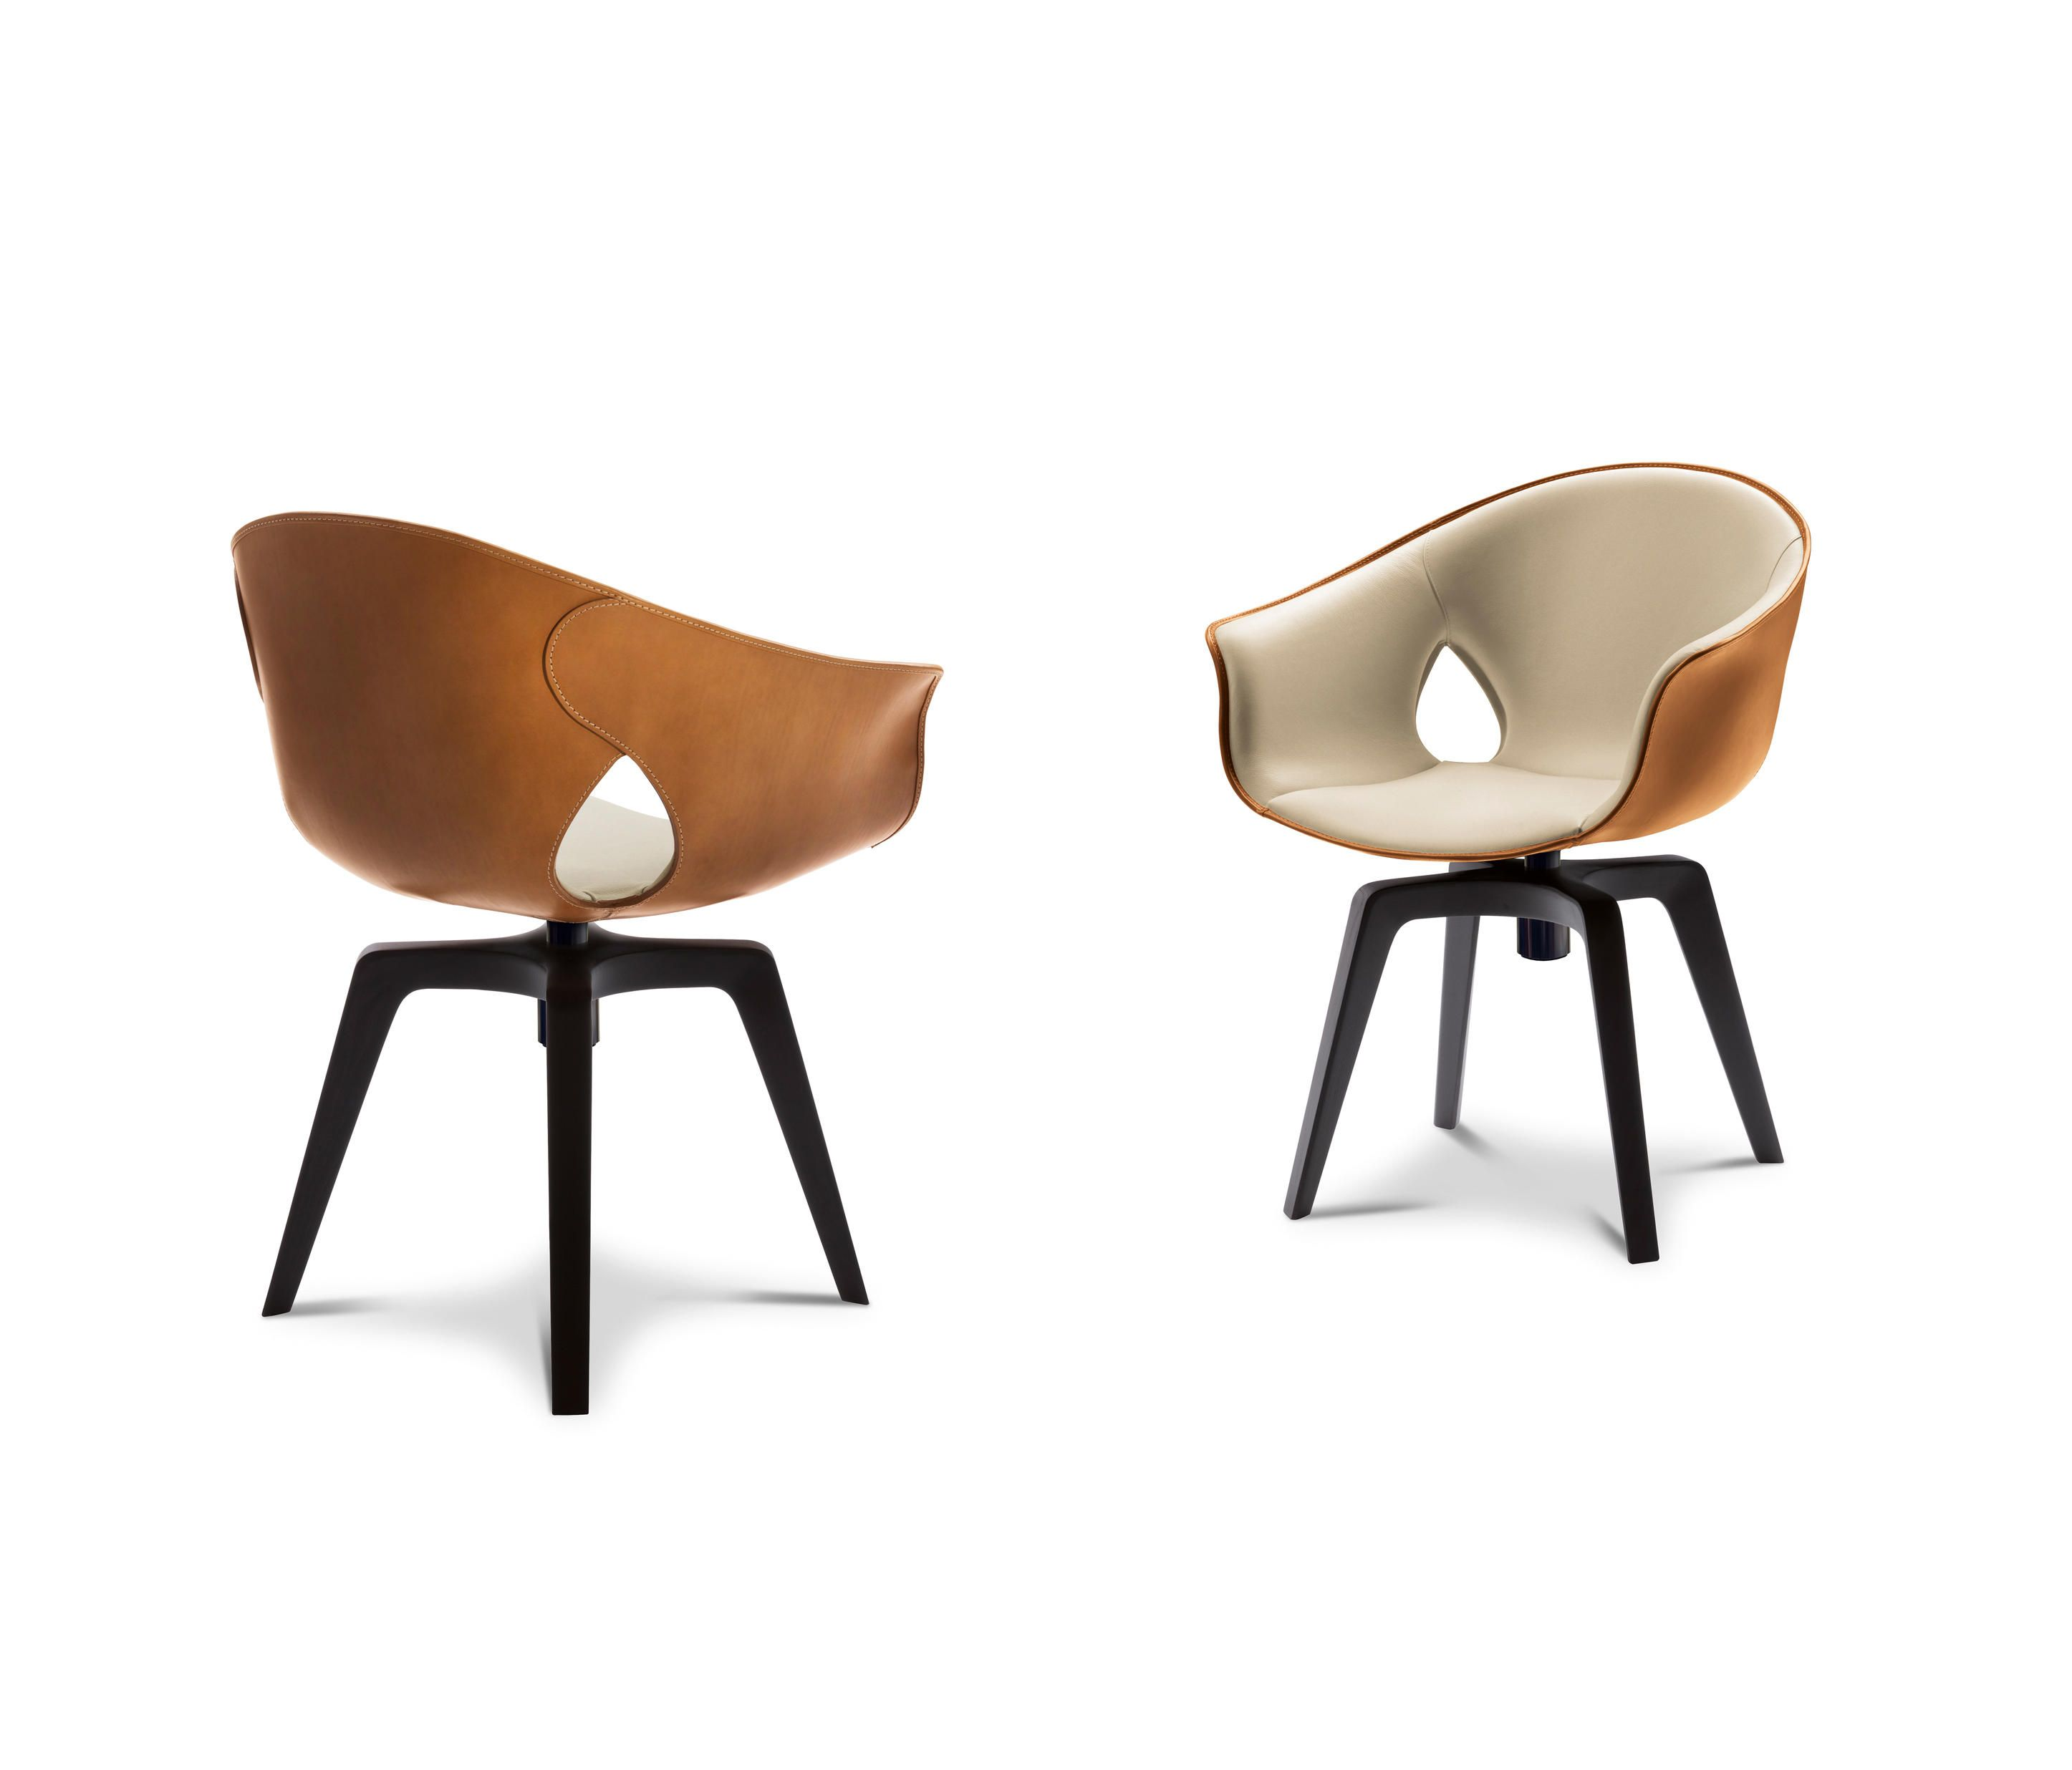 Ginger Swivel Chairs From Poltrona Frau Architonic Poltrona Frau Chair Chair Design